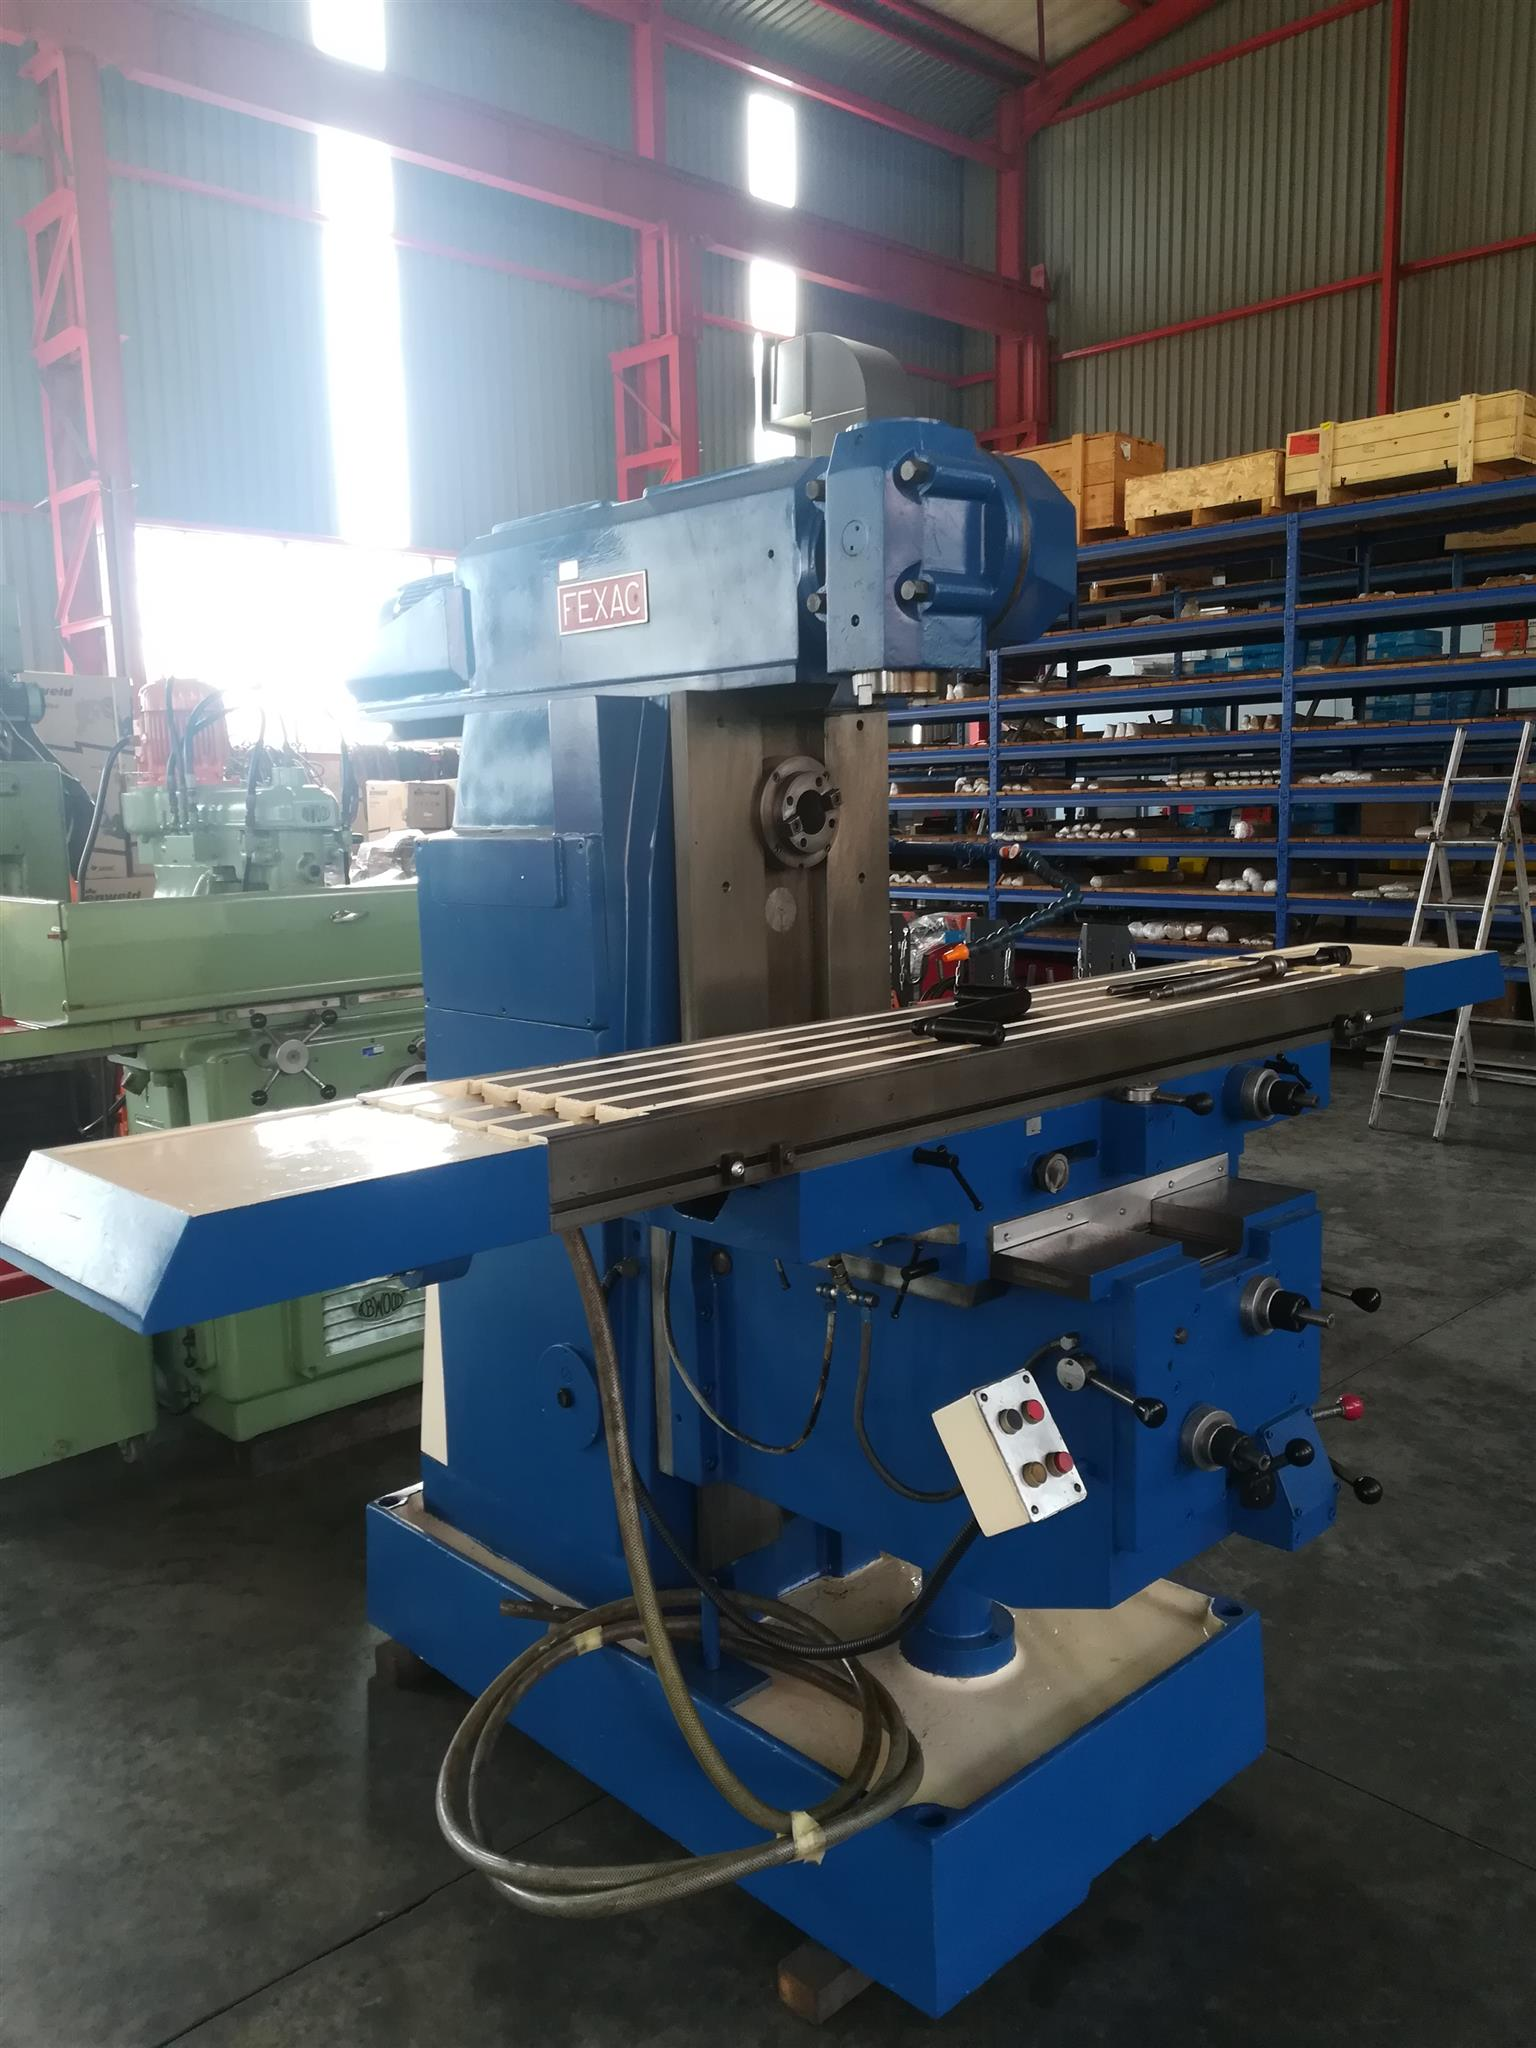 Fexac universal milling machine for sale